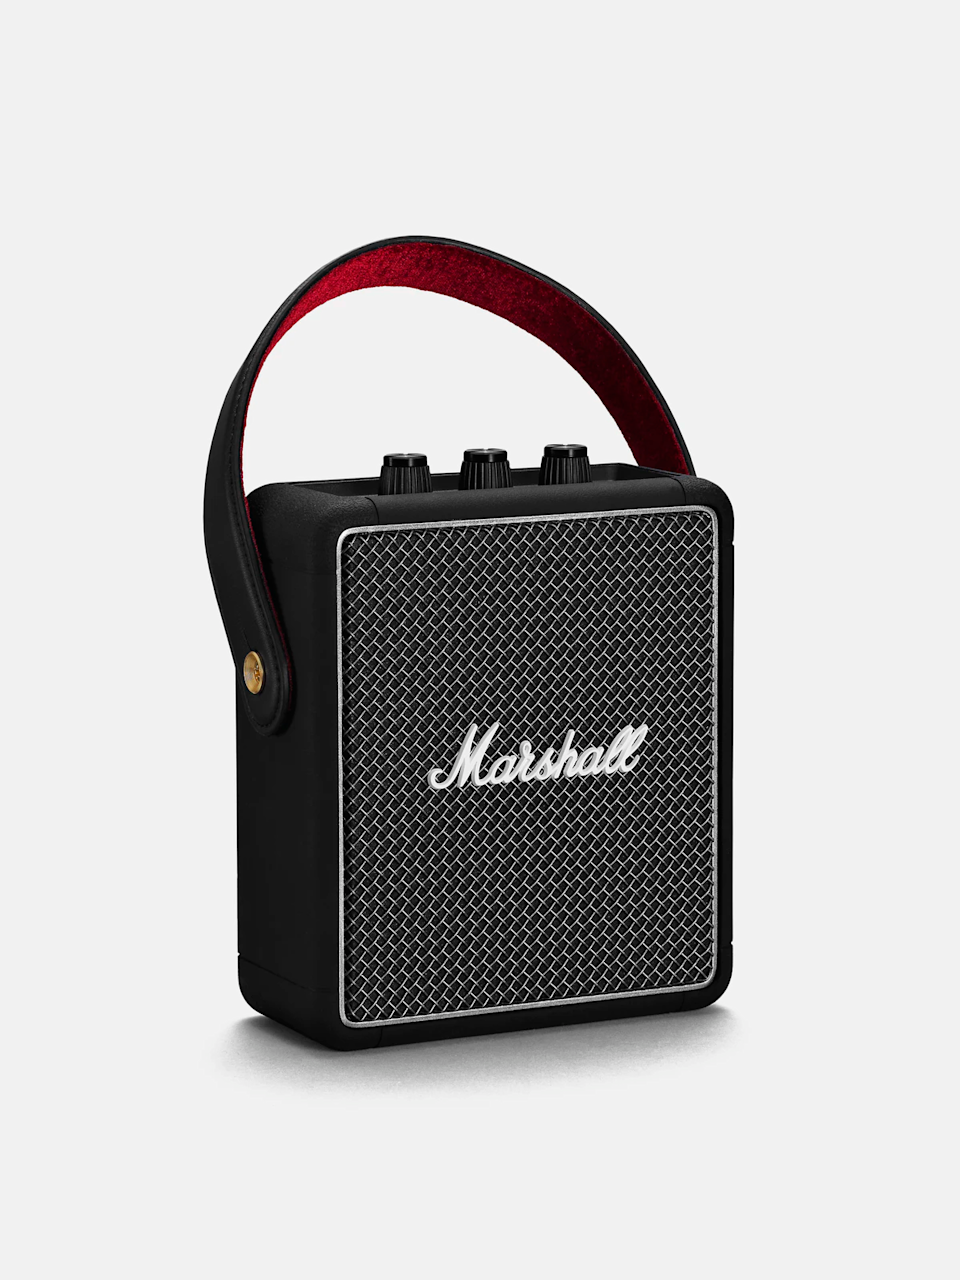 """<h3>Marshall Portable Bluetooth Speaker</h3><br><br>This sweet bluetooth speaker can play whatever your heart desires first thing in the morning, whether it's NPR or some quiet piano music. And, you can bring it around the house with you as you get ready.<br><br><strong>Marshall</strong> Portable Bluetooth Speaker, $, available at <a href=""""https://go.skimresources.com/?id=30283X879131&url=https%3A%2F%2Fwww.verishop.com%2Fmarshall%2Fspeakers%2Fstockwell-ii-bluetooth-portable-speaker%2Fp4163173449751"""" rel=""""nofollow noopener"""" target=""""_blank"""" data-ylk=""""slk:Verishop"""" class=""""link rapid-noclick-resp"""">Verishop</a>"""